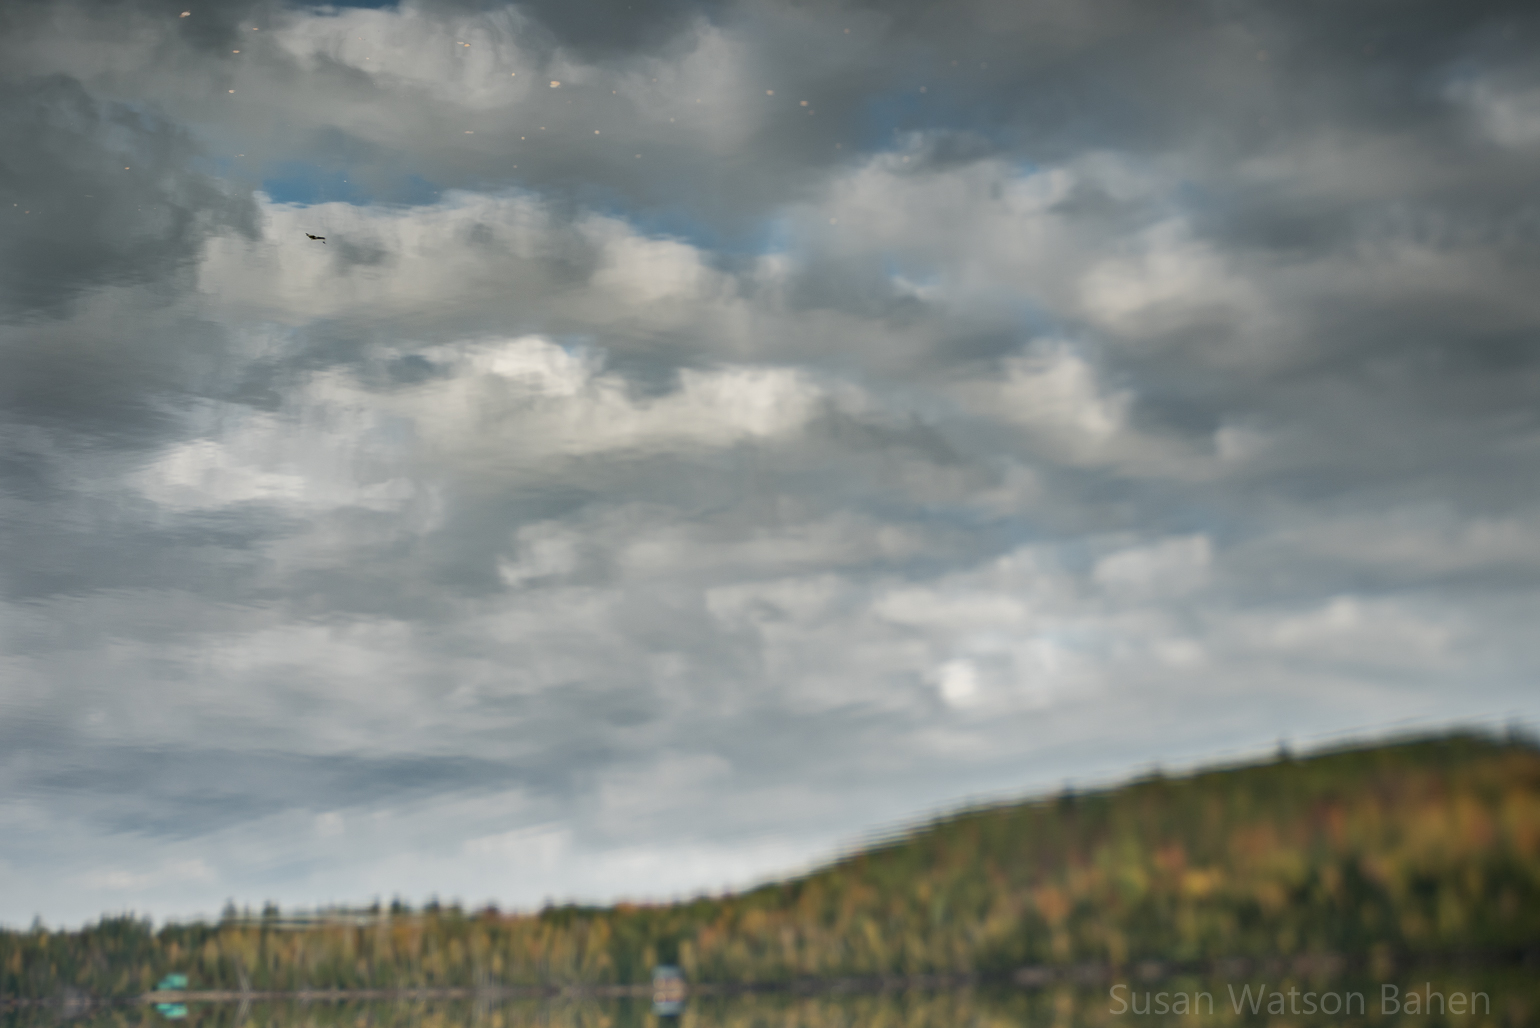 ottawa-fine-art-photographer-susan-watson-bahen-serenity-blog-october-reflection-of clouds-in-lake-pemichangan-lensbaby-edge50